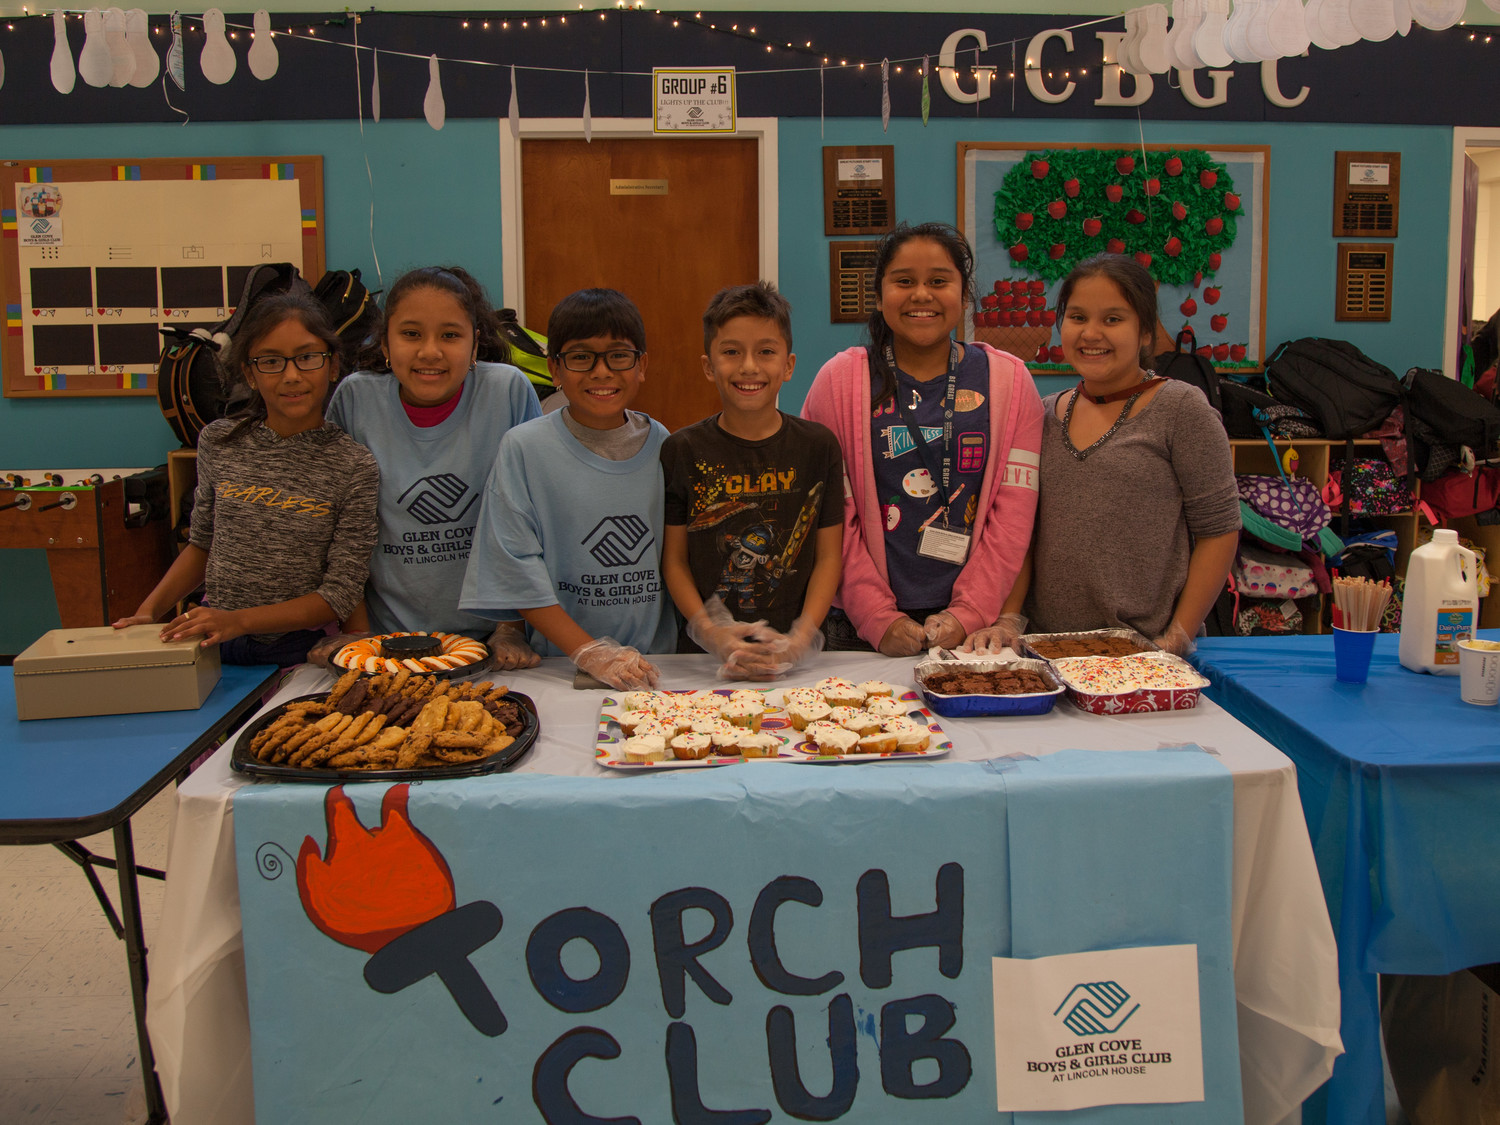 Angie Mendoza, left, Yesica Valladares, Daniel Hernandez, Jabier Escobar, Yamna Vigil, and Ashley Najarro sold baked goods for the GCB&GC's Torch Club at the Lights on Afterschool.